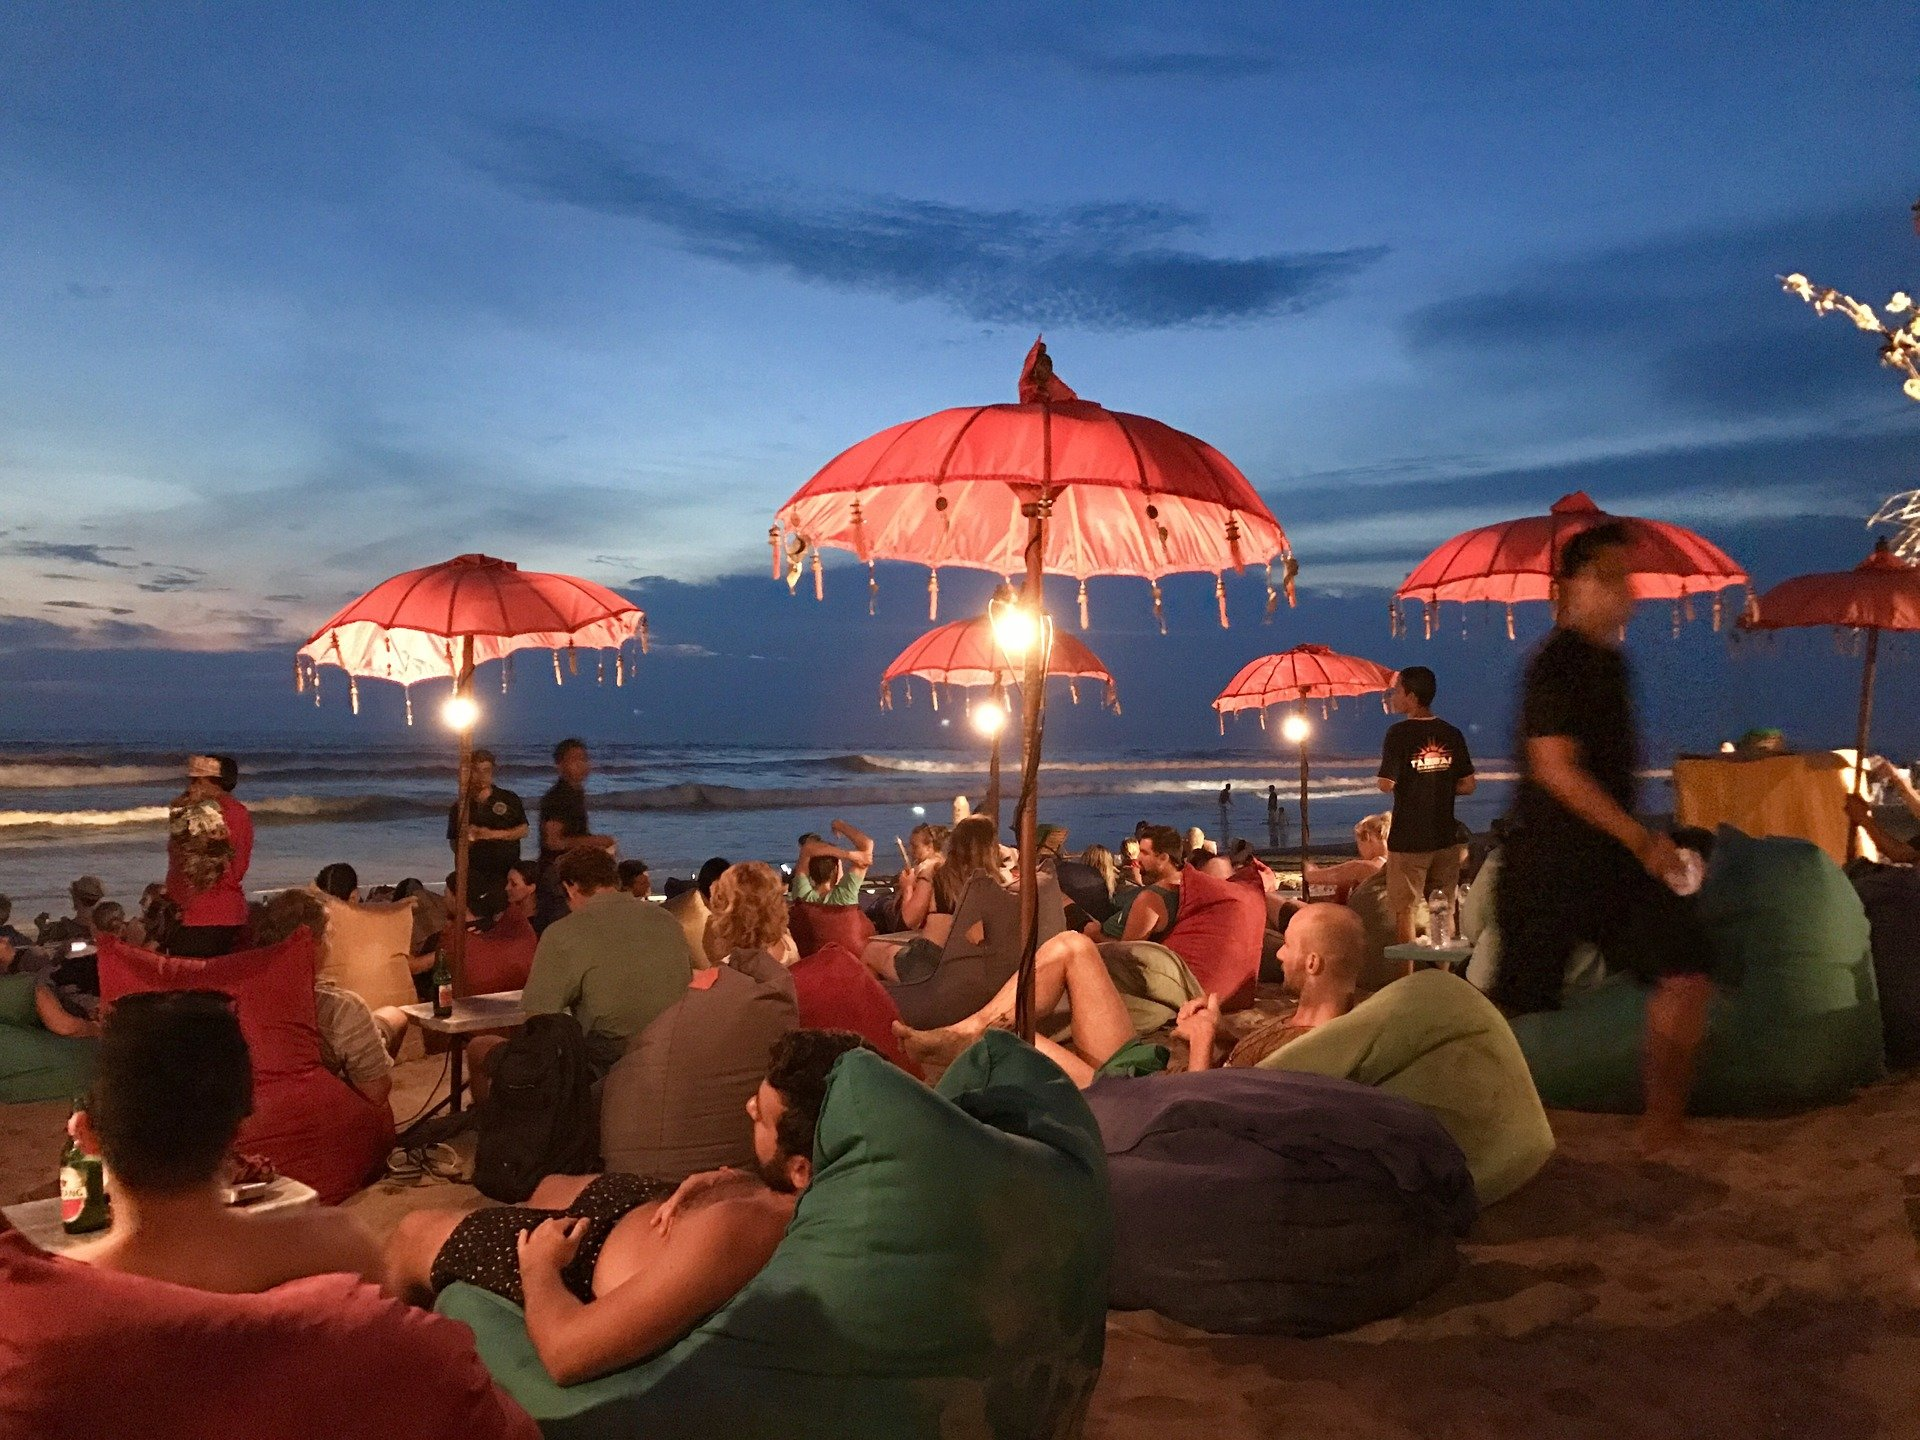 Bali beach party 2013